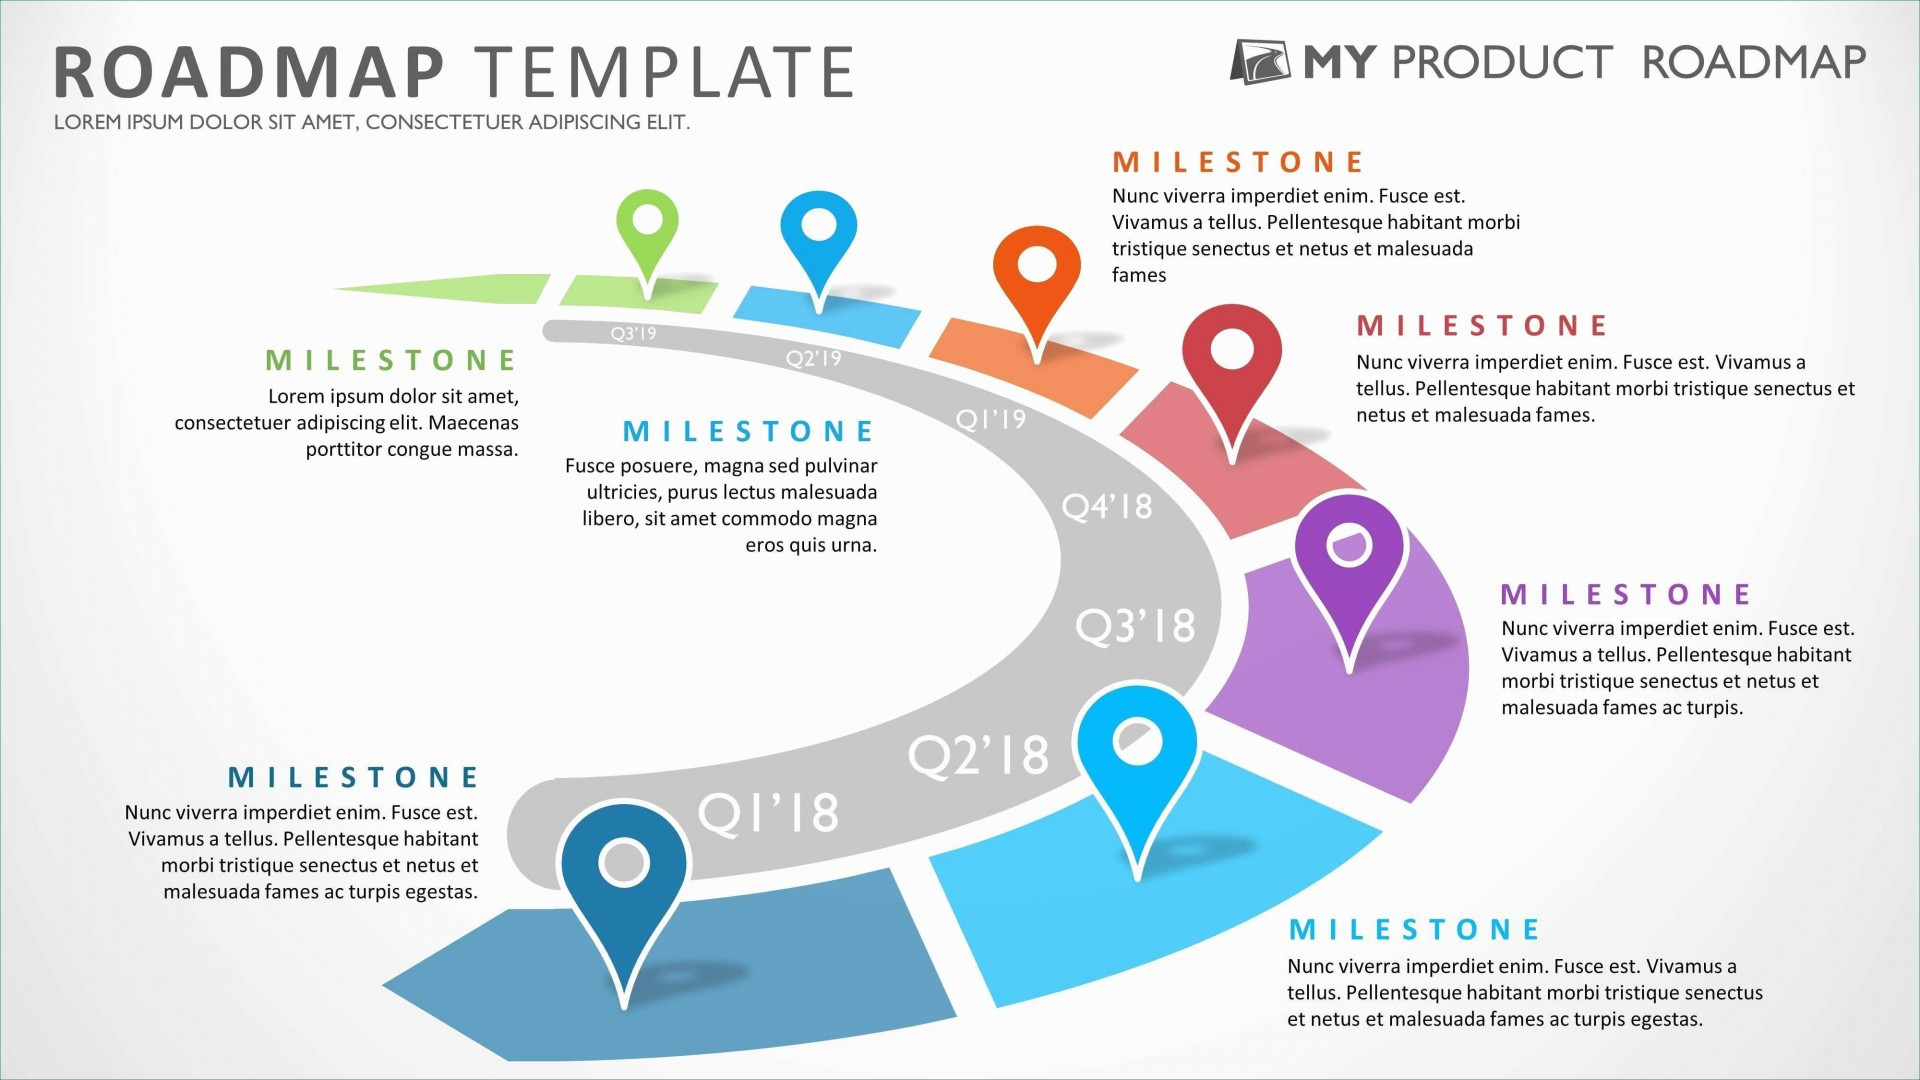 000 Phenomenal Road Map Template Powerpoint High Resolution  Roadmap Ppt Free Download Product1920